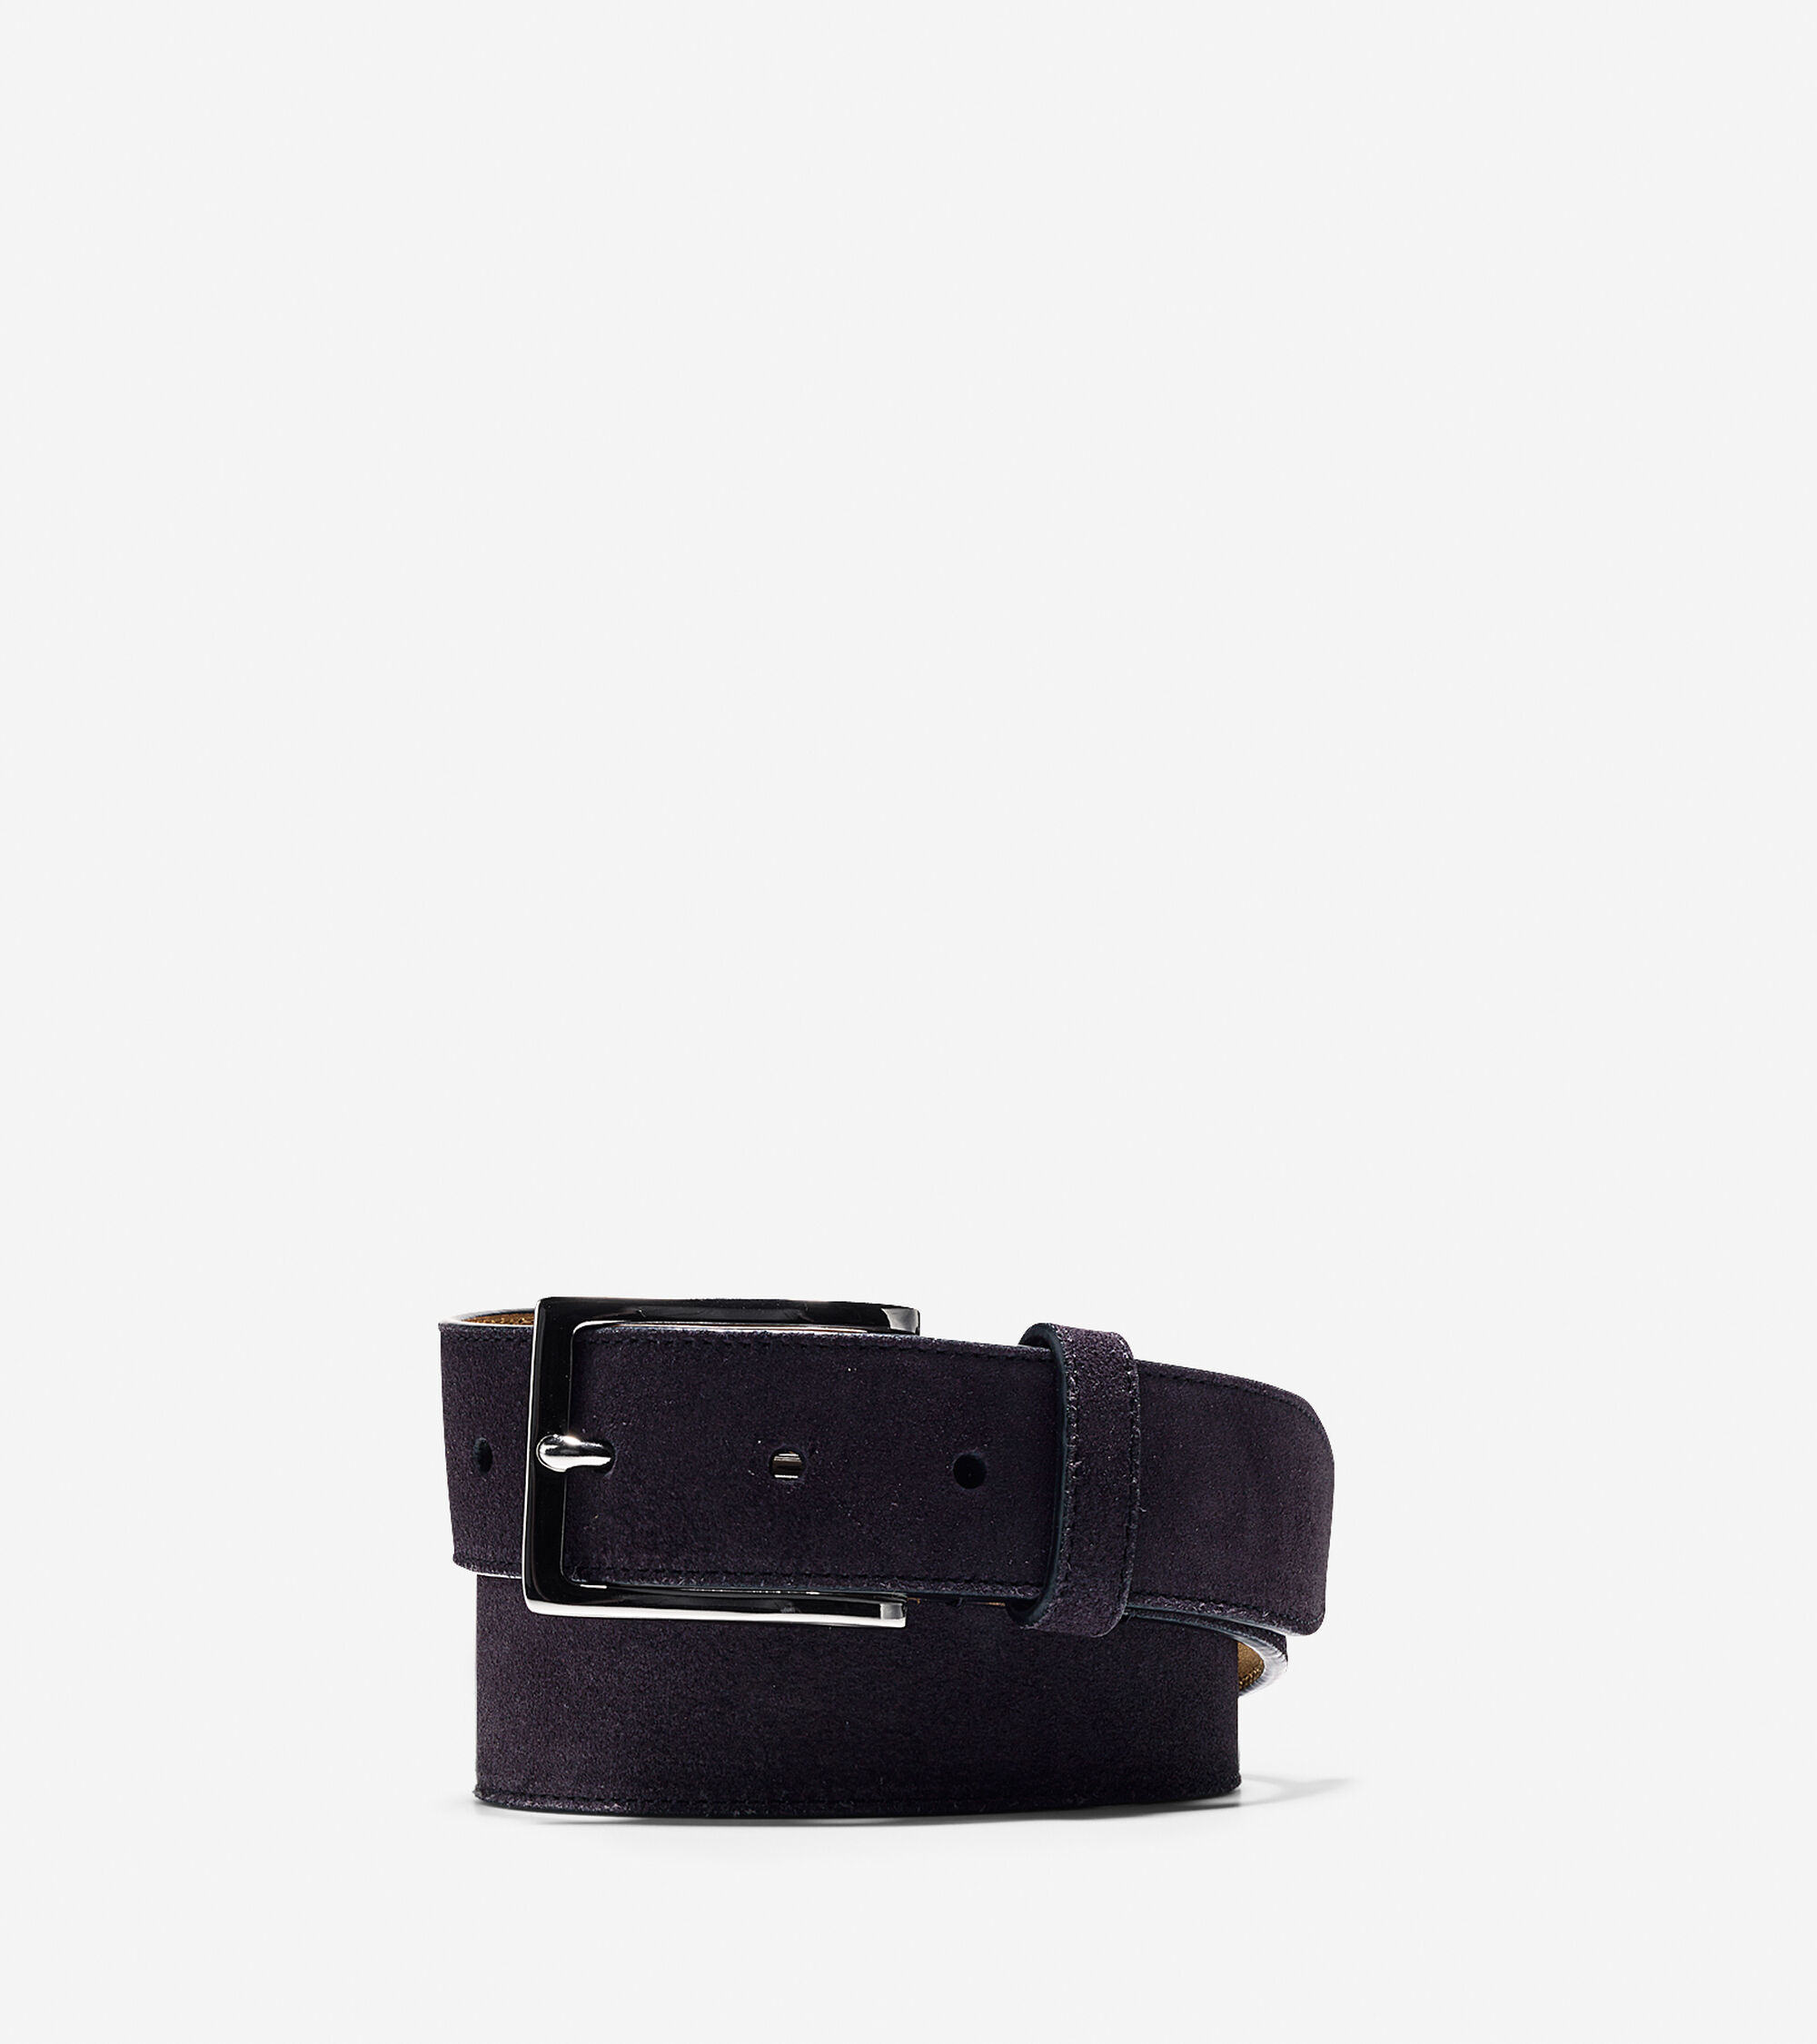 Accessories > 32mm Suede Belt